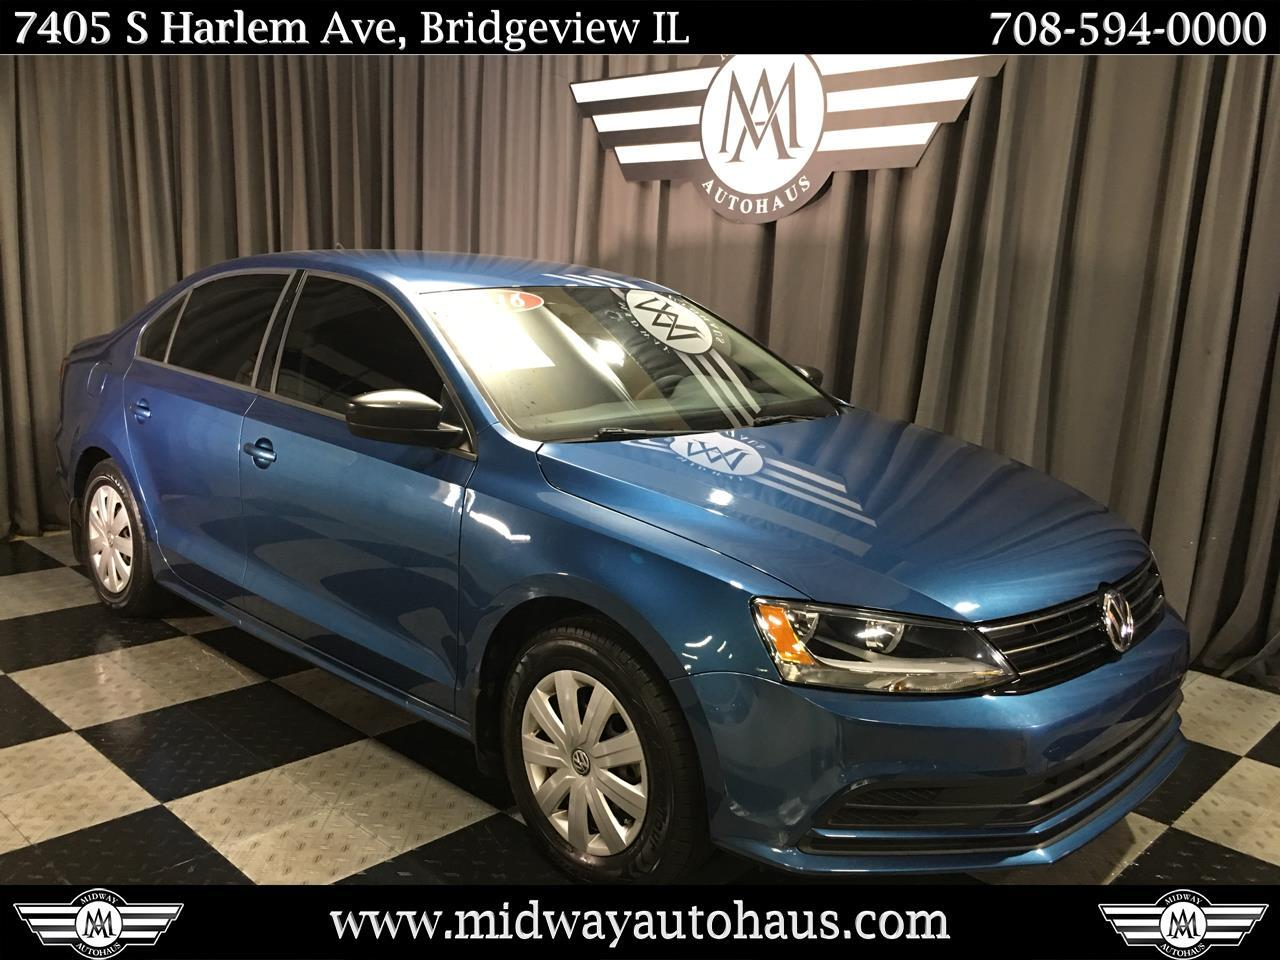 Pre-Owned 2016 Volkswagen Jetta Sedan 4dr Man 1.4T S w/Technology